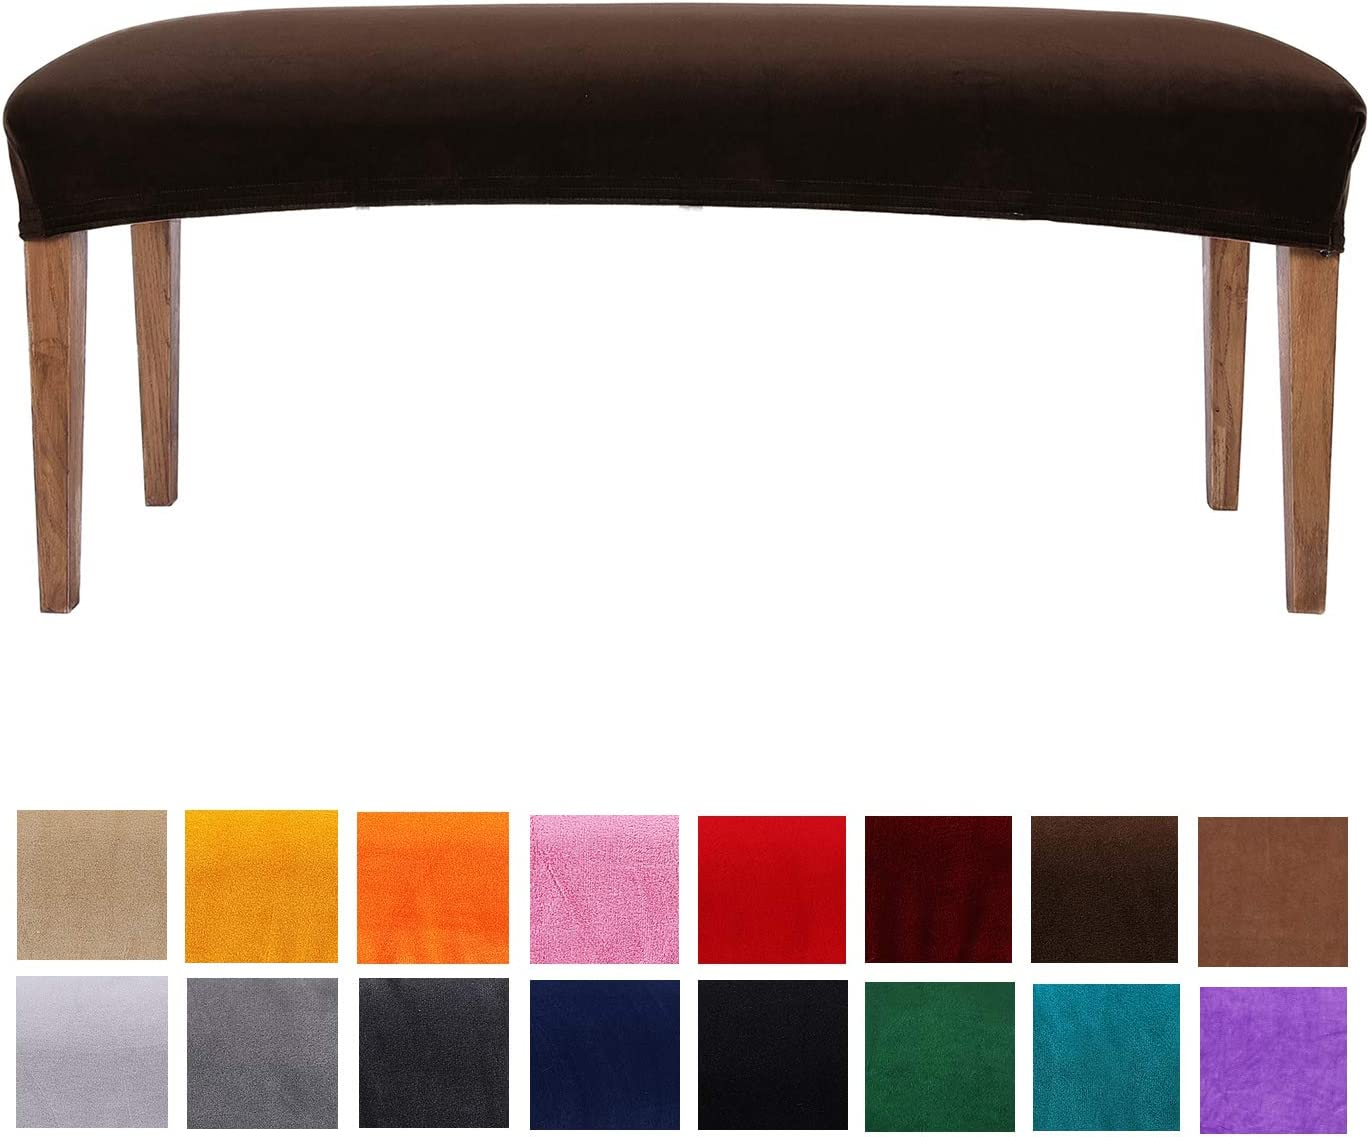 smiry Velvet Dining Bench Cover - Soft Stretch Dining Room Bench Slipcovers Protector, Machine Washable, Snug Fit, Coffee